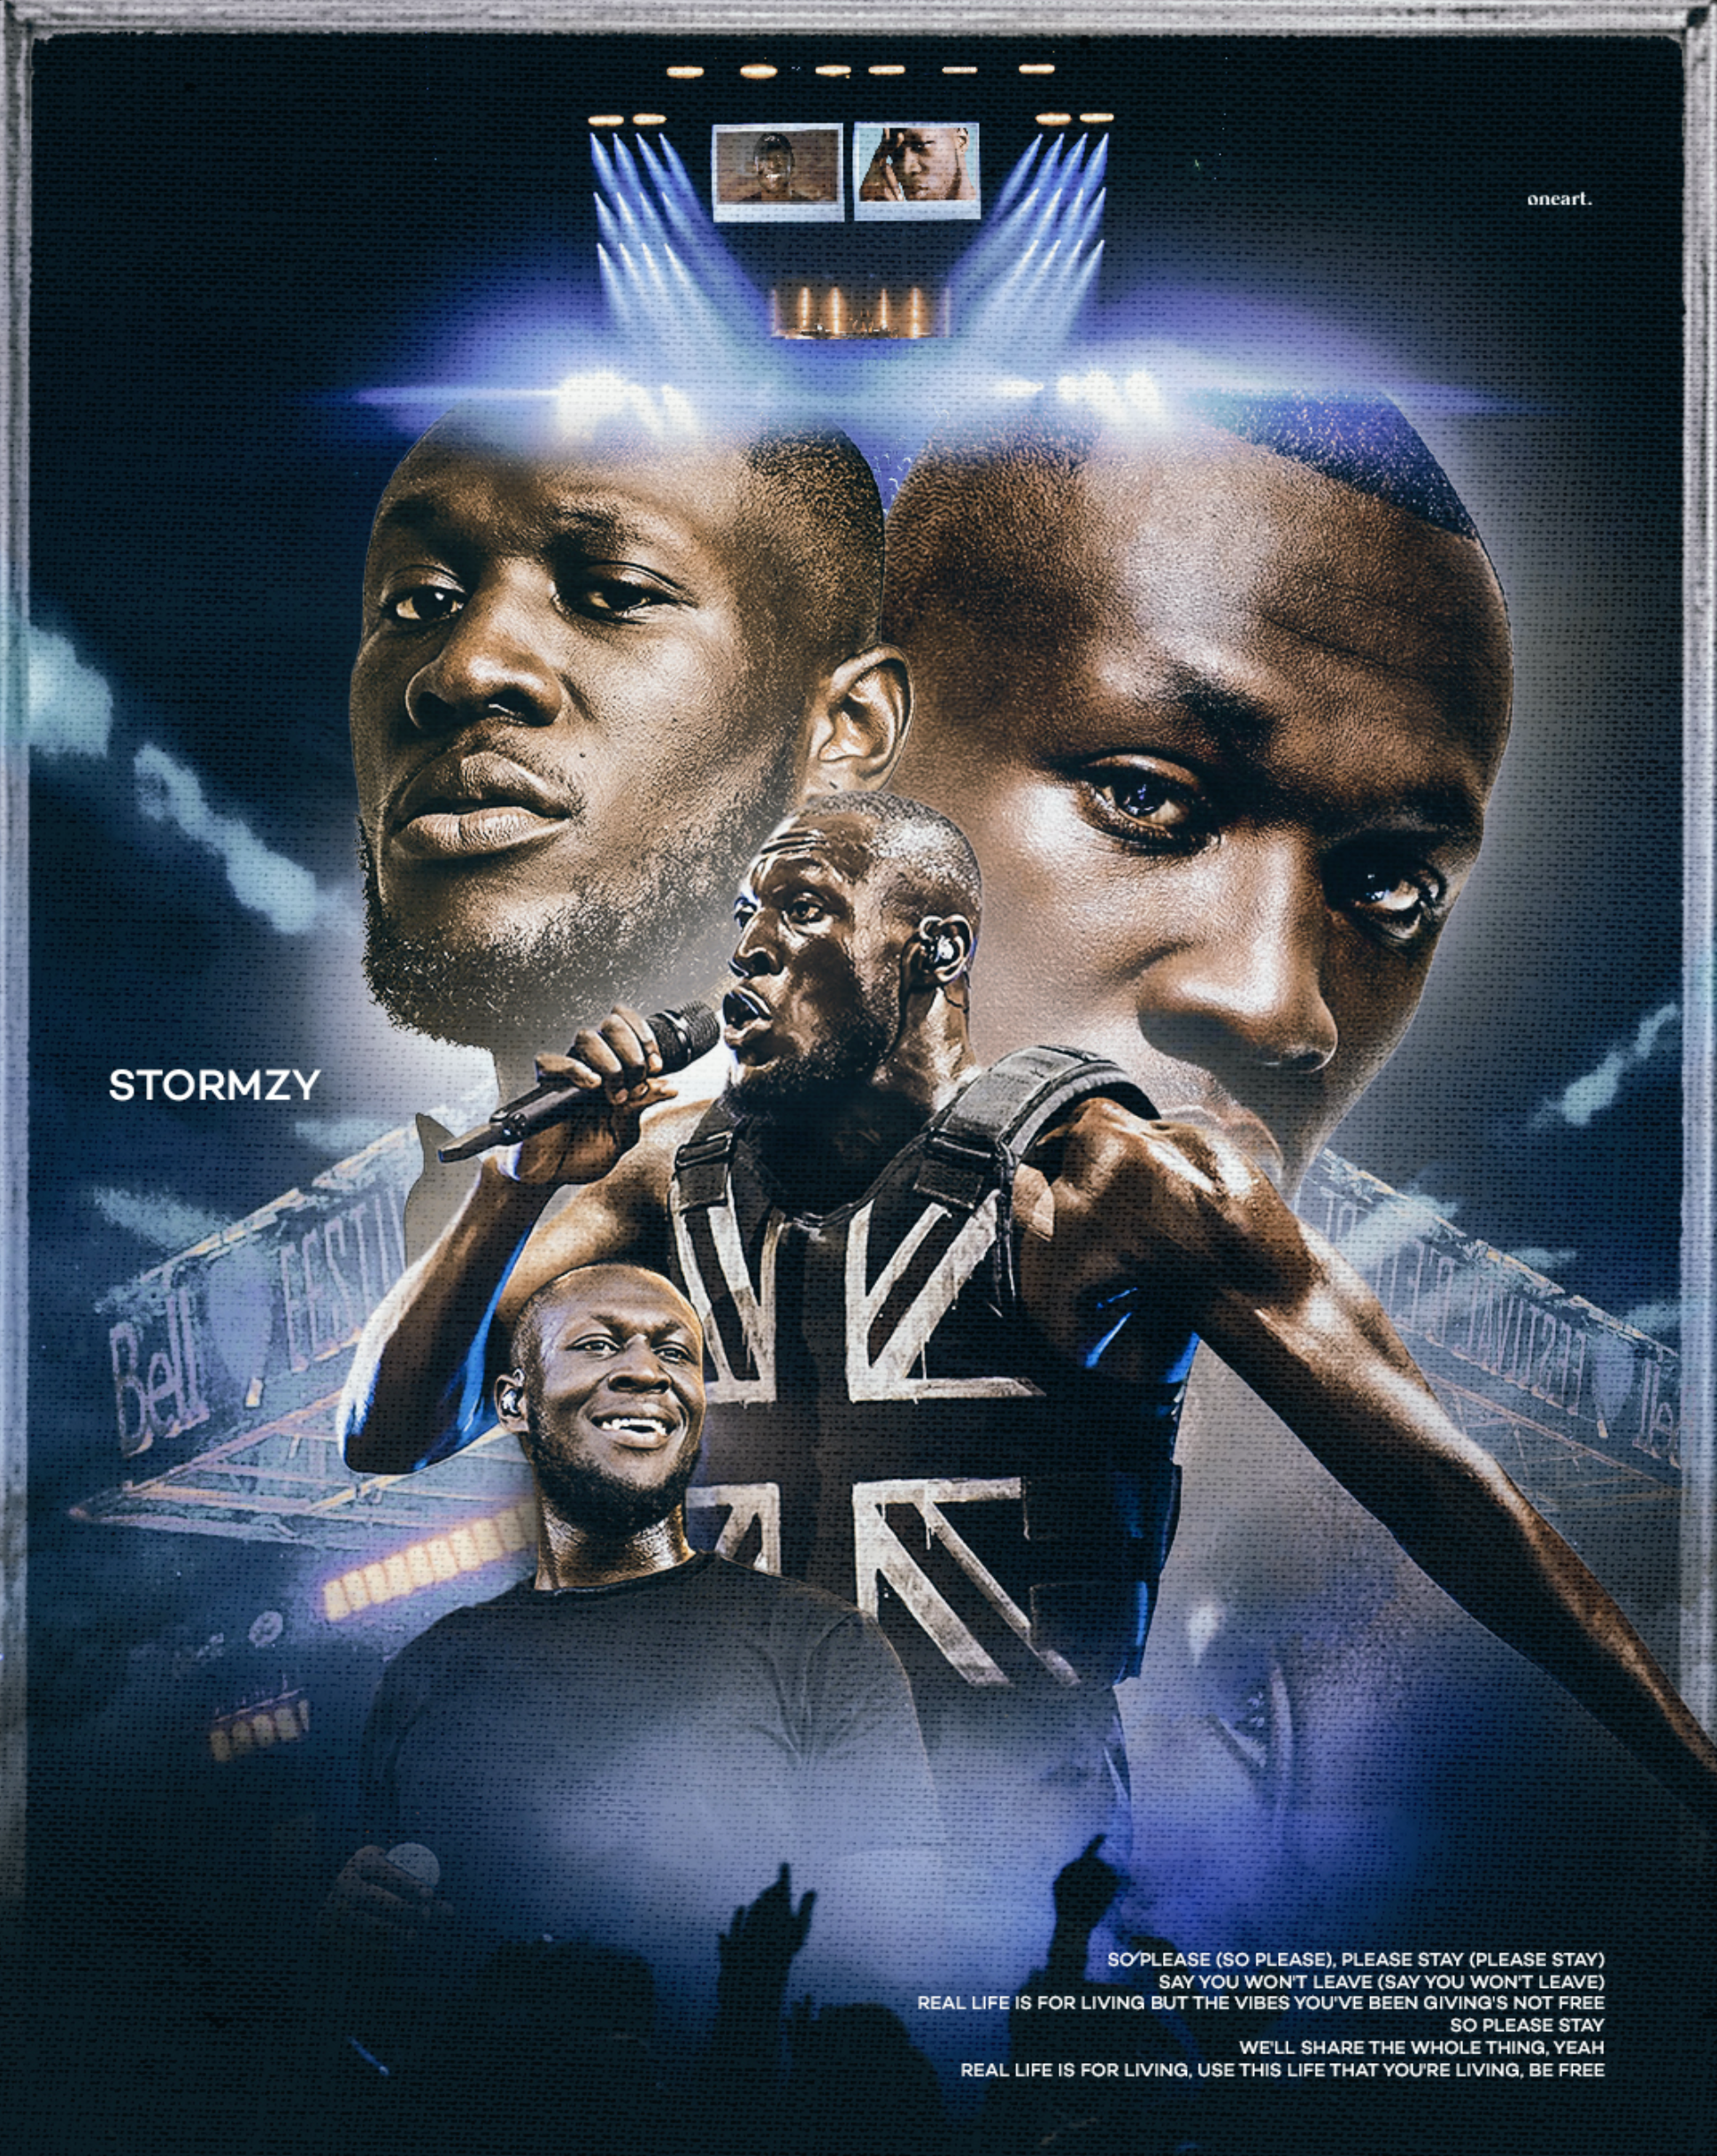 STORMZY X ONEART